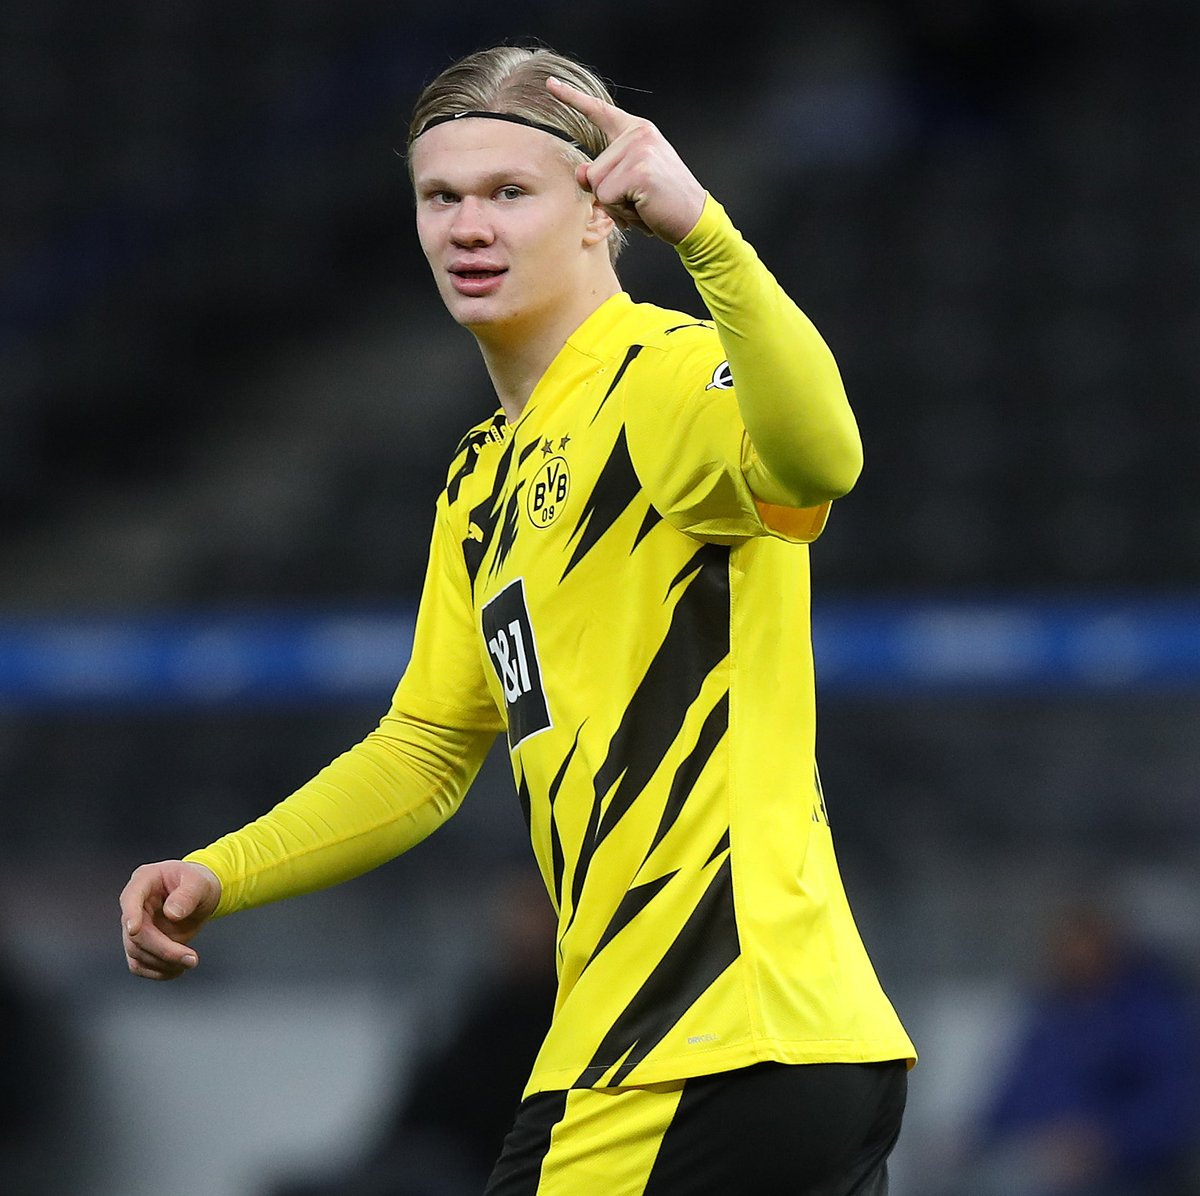 Erling Haaland ⚽️⚽️⚽️⚽️  @ErlingHaaland has now scored 15 goals in all competitions for Dortmund this season in 12 games 🔥🔥🔥  #UCL